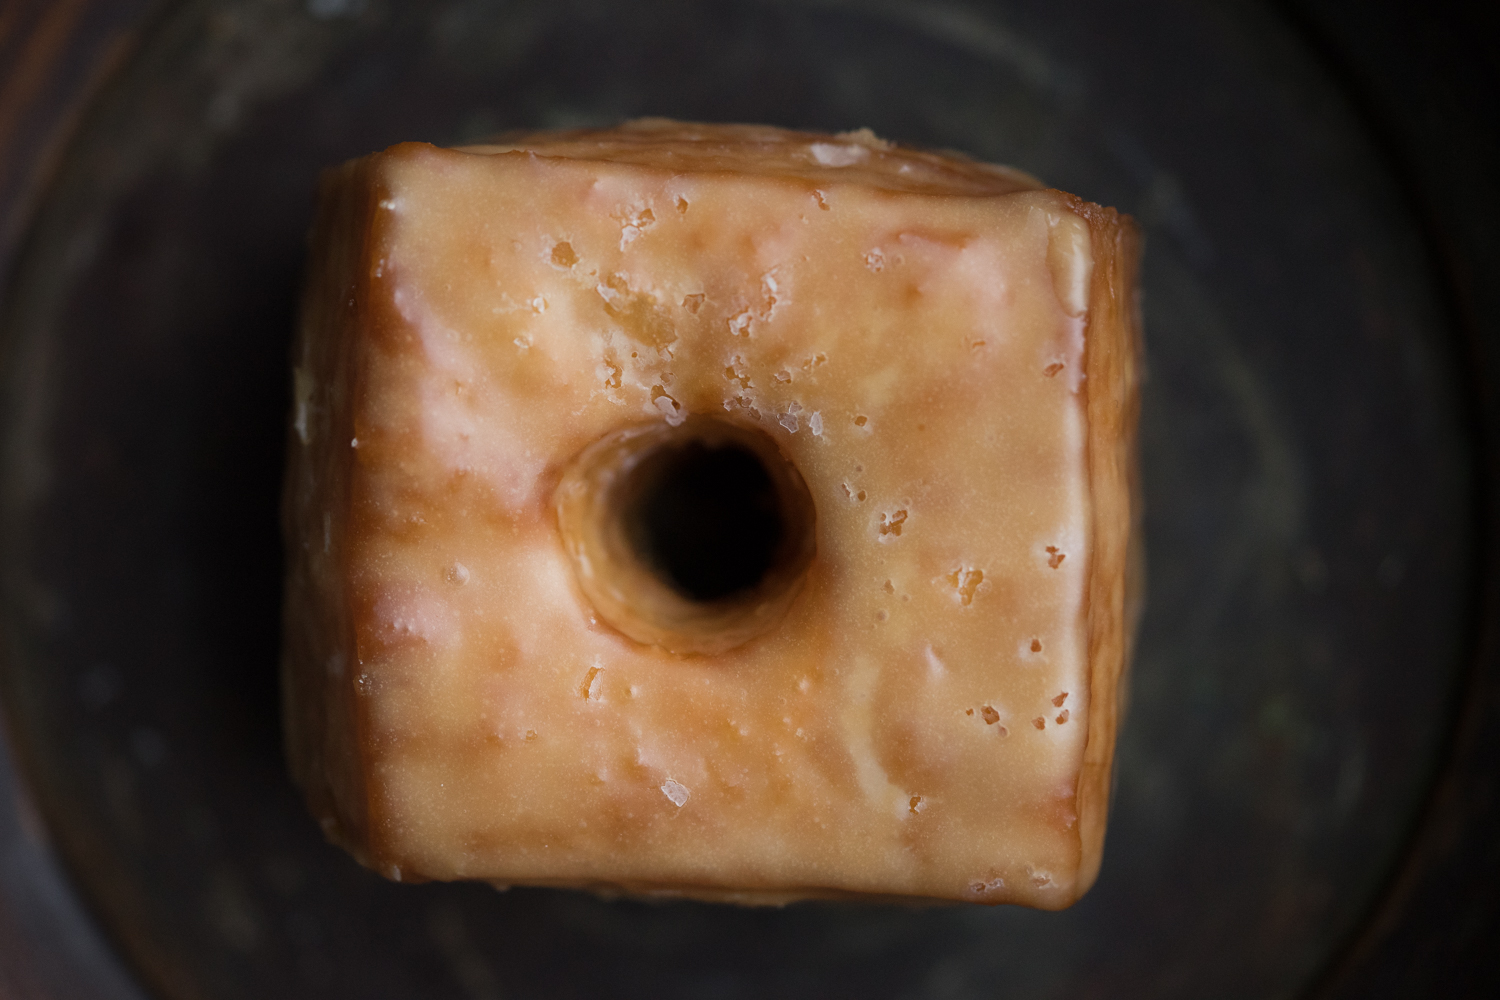 Unique square doughnuts from Doughnut Savant. The doughnut pictured above was sprinkled with sea salt.